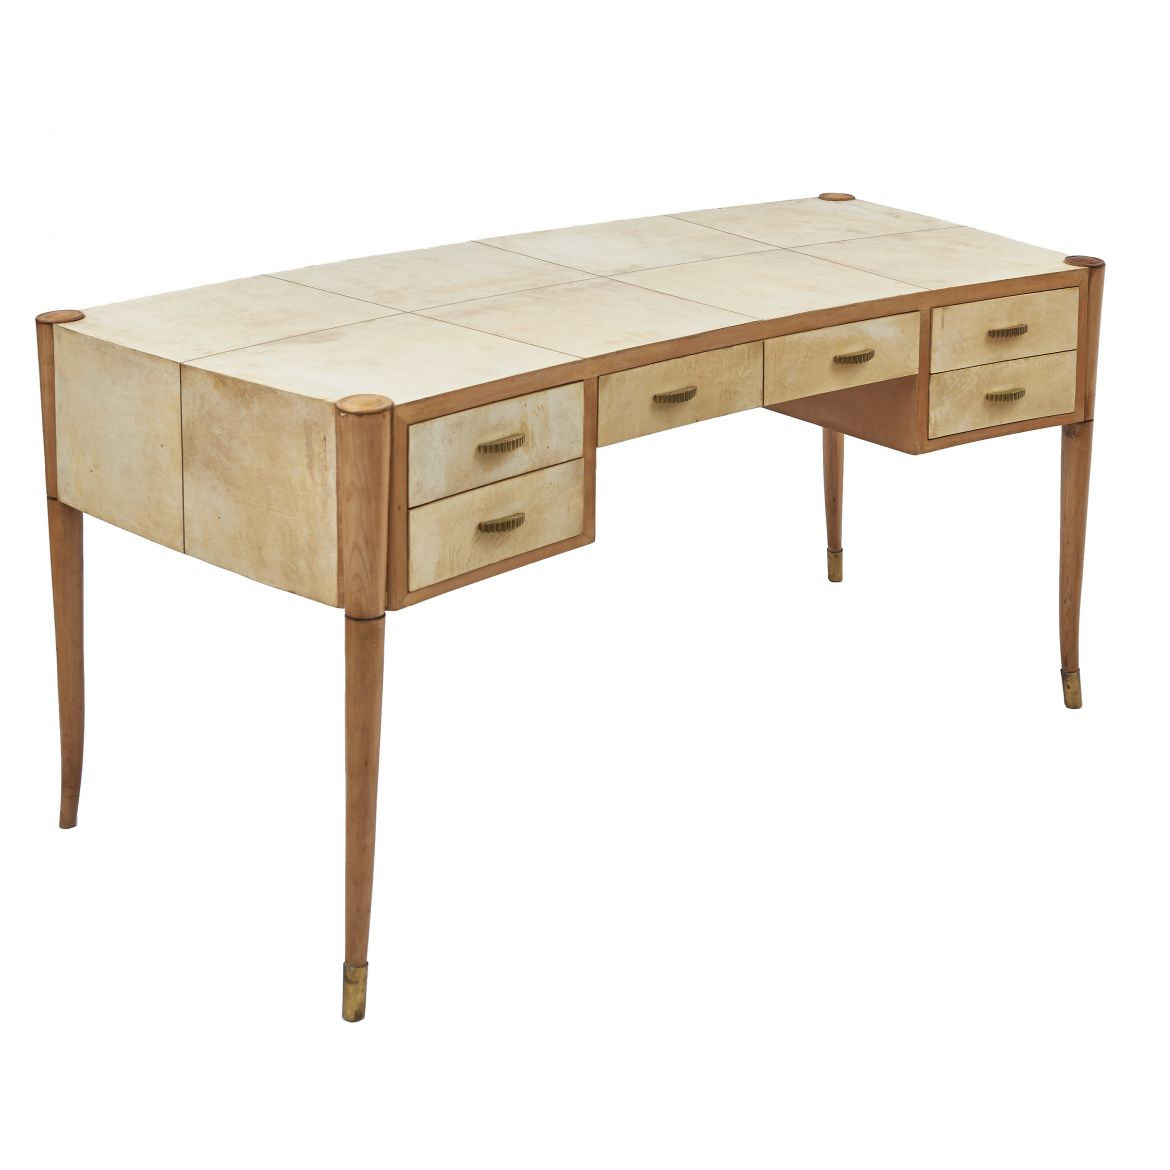 Maple & Vellum Desk